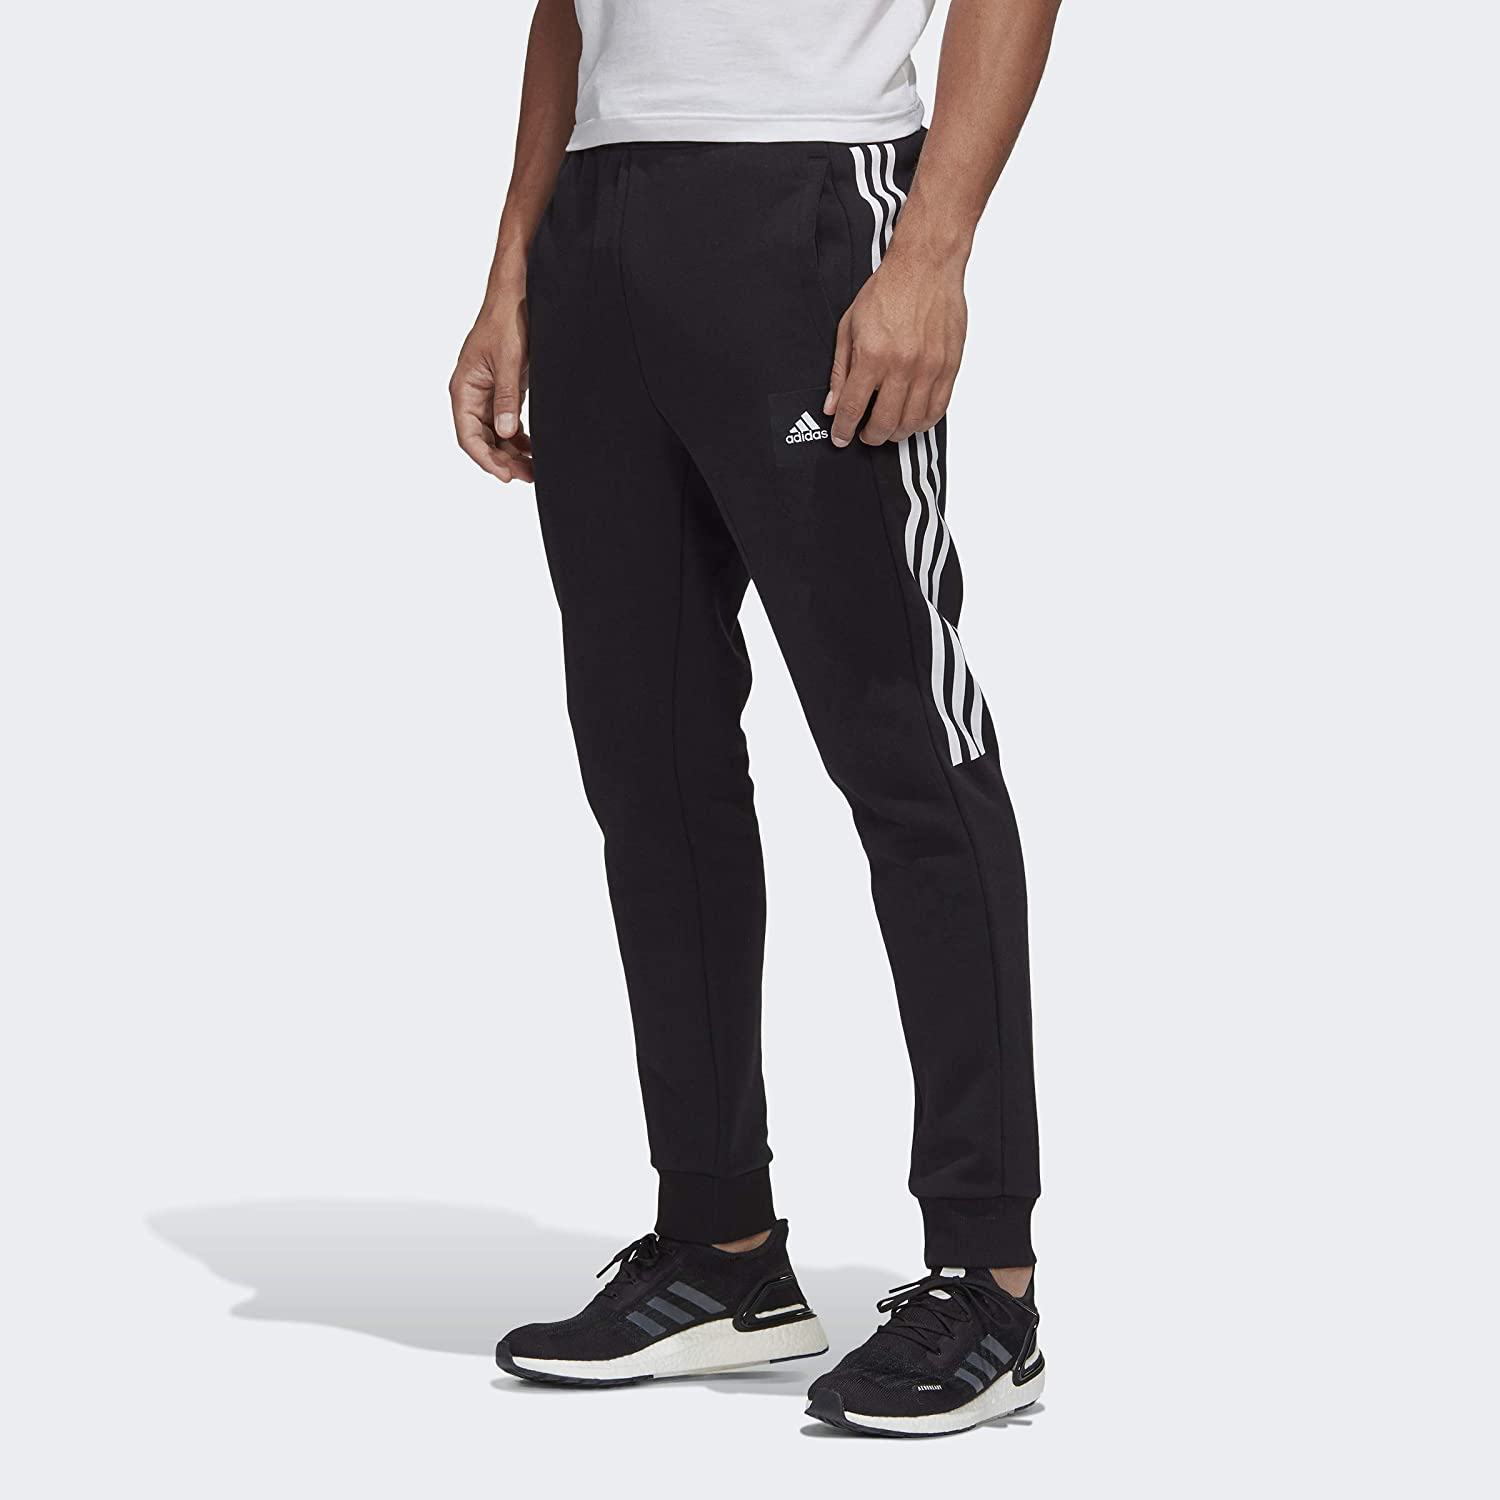 adidas Mens Must At the price of surprise Haves OFFicial site Fleece Pant Cuffed